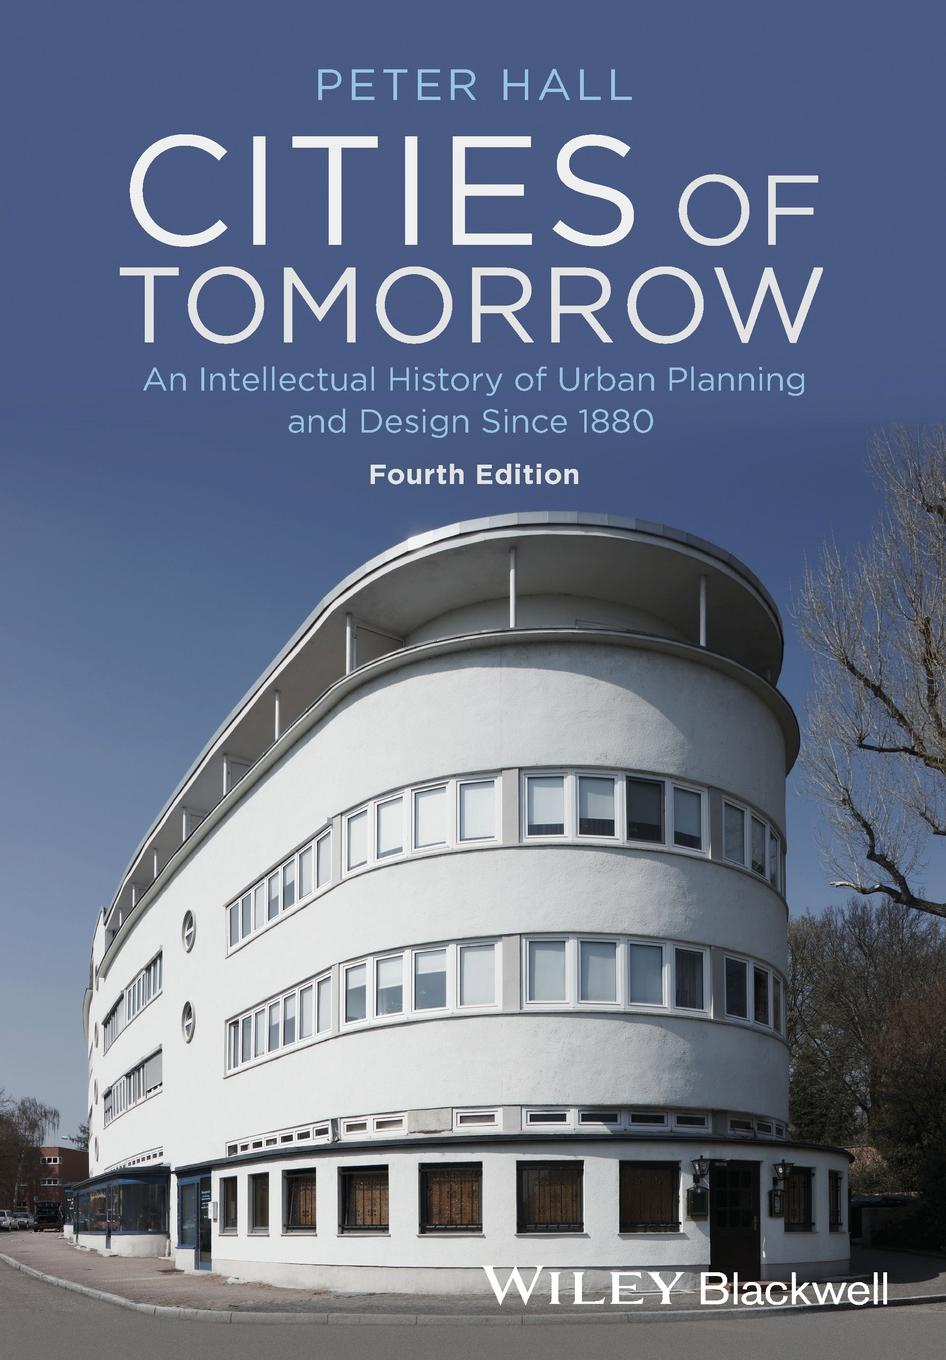 Peter Hall Cities of Tomorrow - An Intellectual History of Urban Planning and Design Since 1880 4e цена и фото